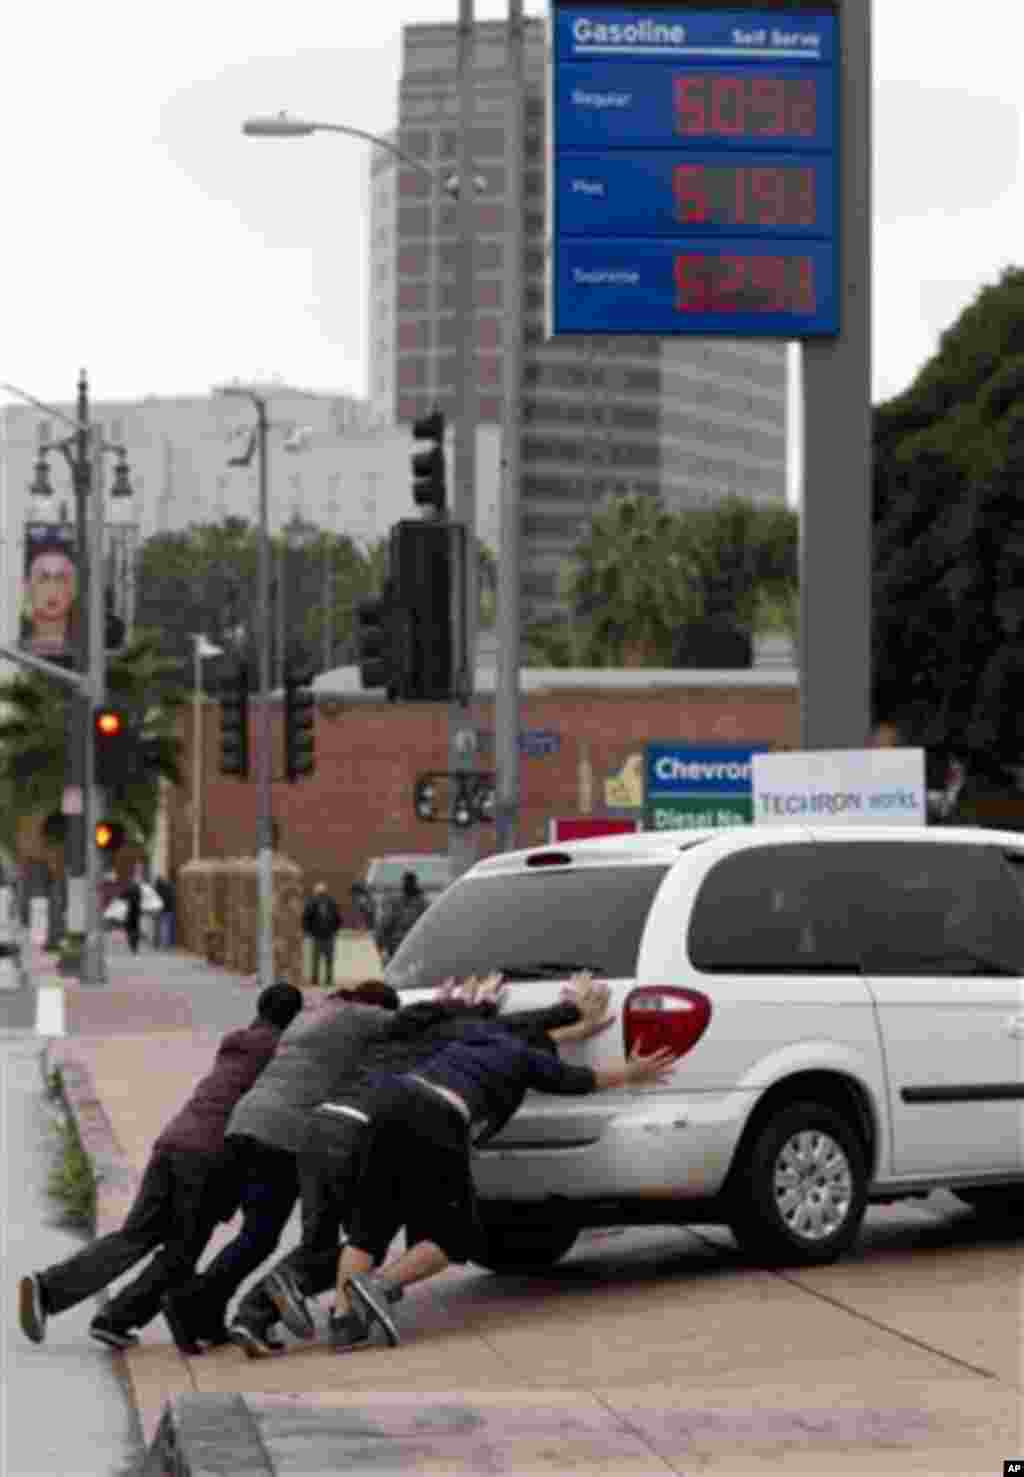 Pedrestrians help push a motorist who ran of gas into a station downtown Los Angeles on Friday, March 16, 2012. Higher gas prices could force consumers to cut back on discretionary spending and could weigh on growth and slow hiring in the nation.(AP Photo